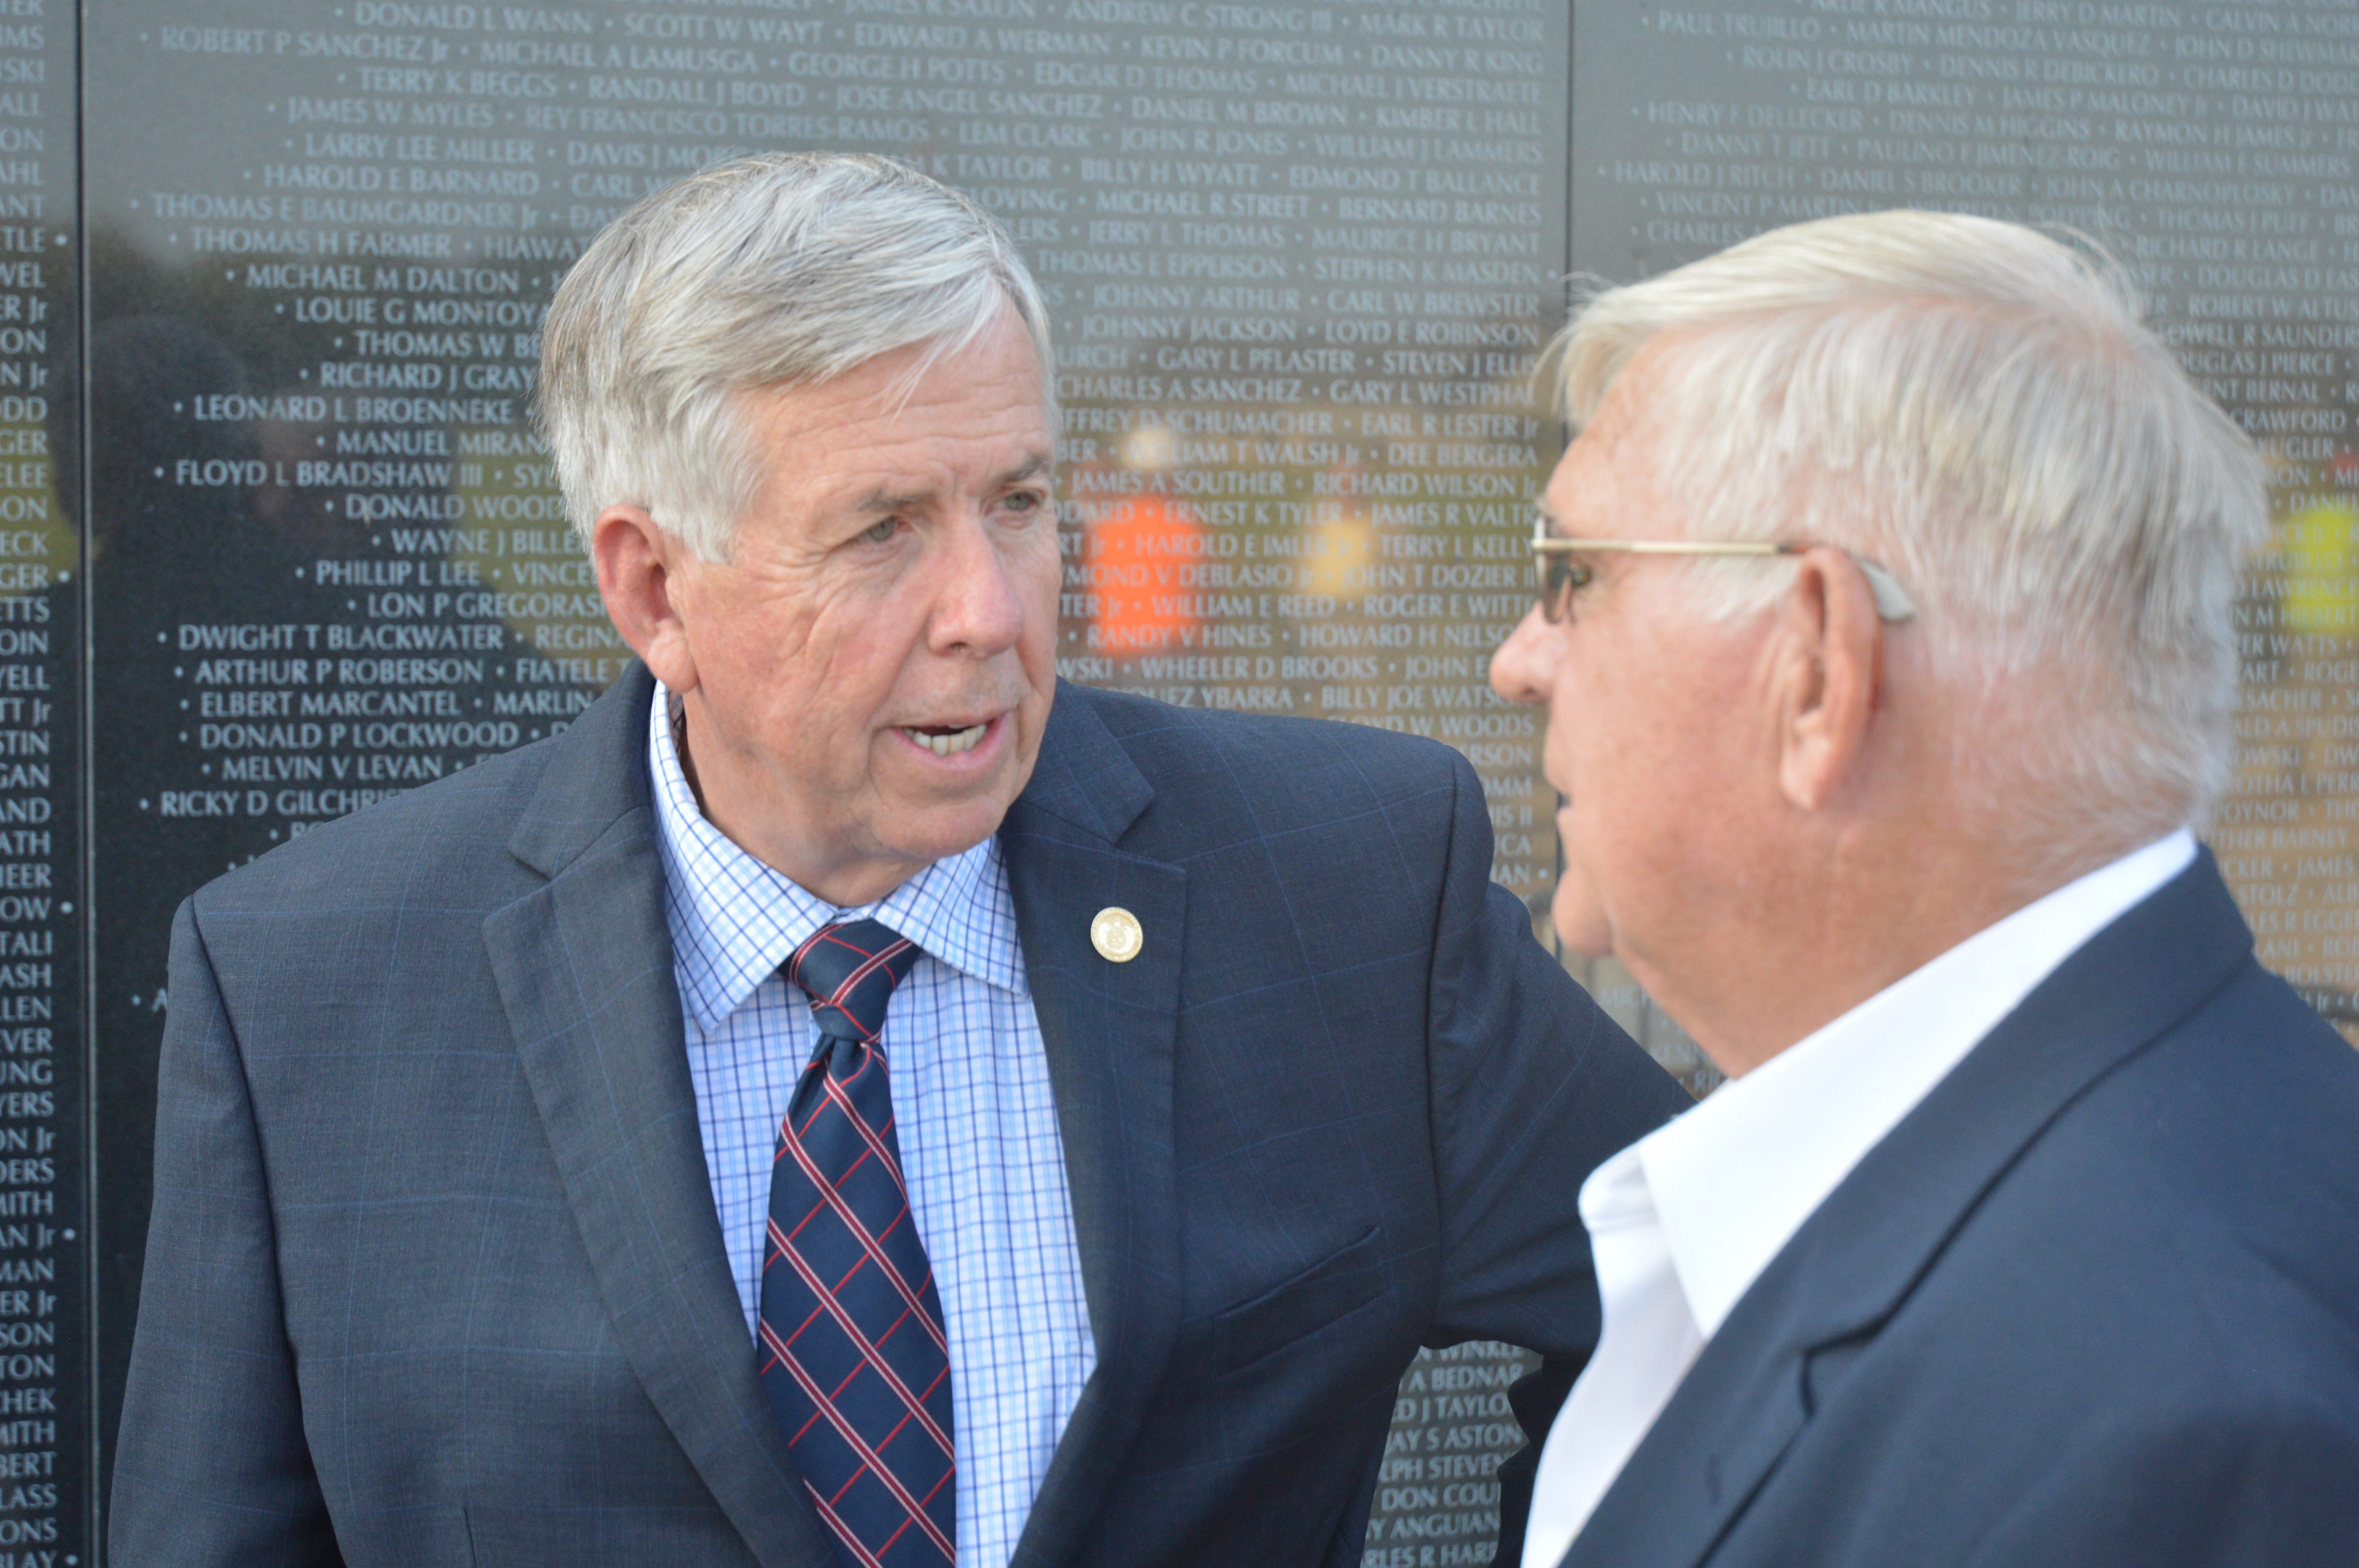 Missouri Gov. Mike Parson (left) speaks with Jim Eddleman on Wednesday, Aug. 27, 2018, during a visit to Missouri's National Veterans Memorial in Perryville. Eddleman, a Vietnam veteran and third-generation Perry County farmer, donated 47 acres of his family farm to the memorial site.  (Photo courtesy of the Republic-Monitor in Perryville.)